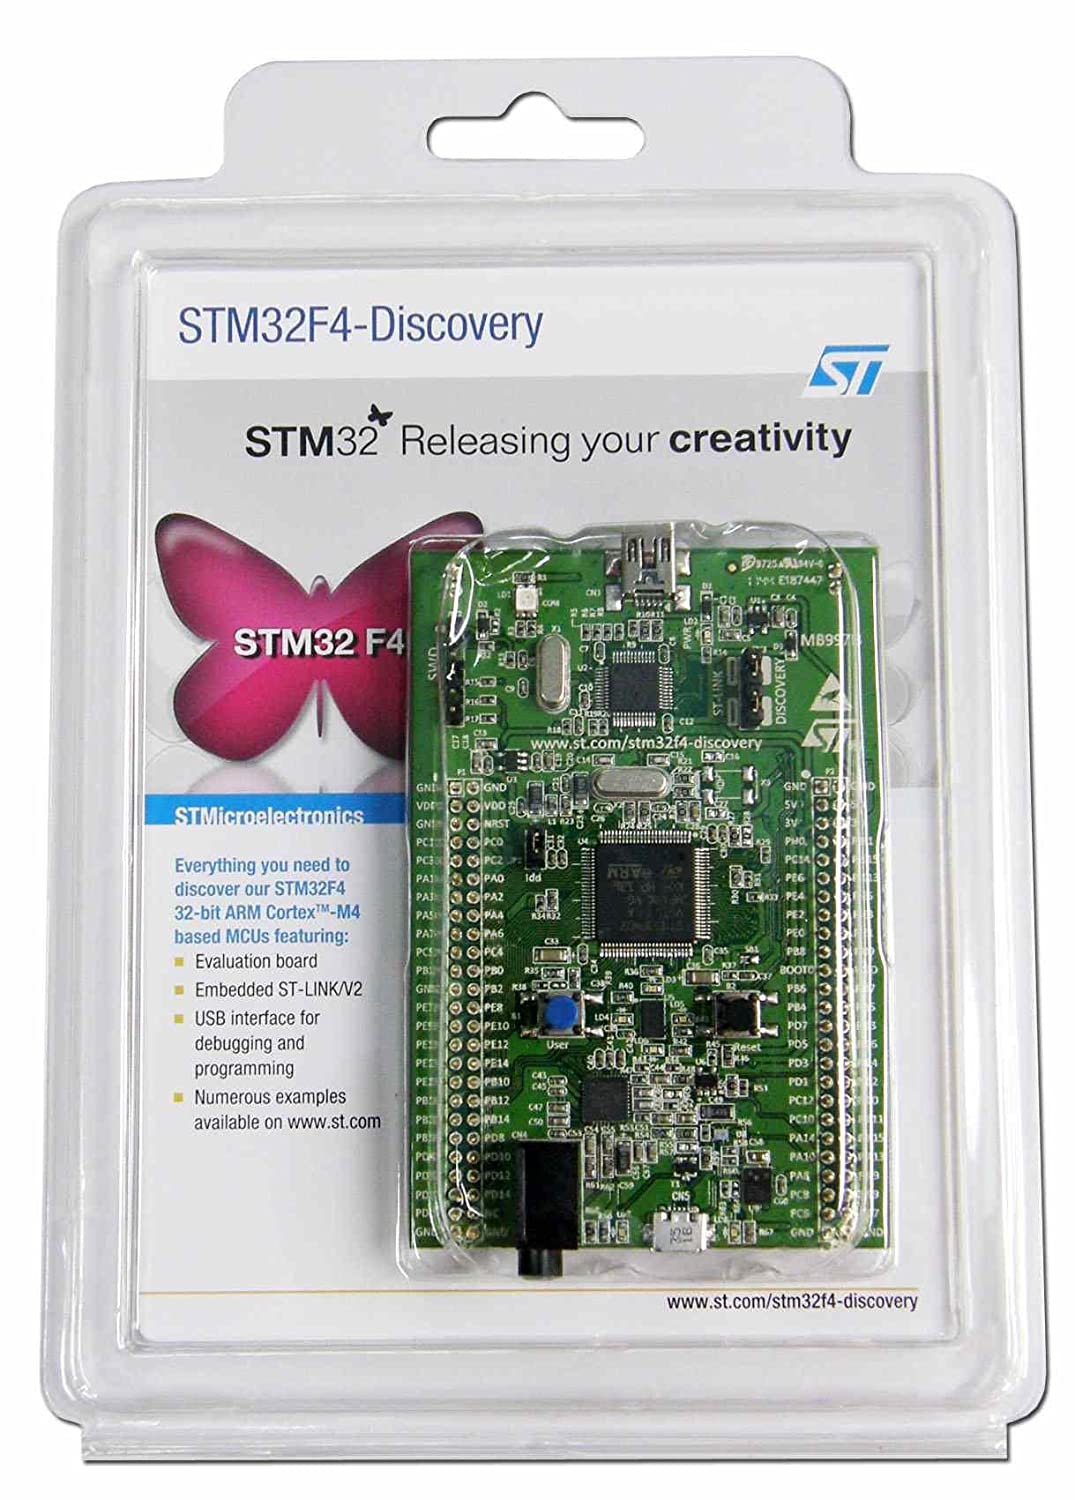 Amazon in: Buy STM32F4DISCOVERY ST STM32 STM32F4 STM32F407